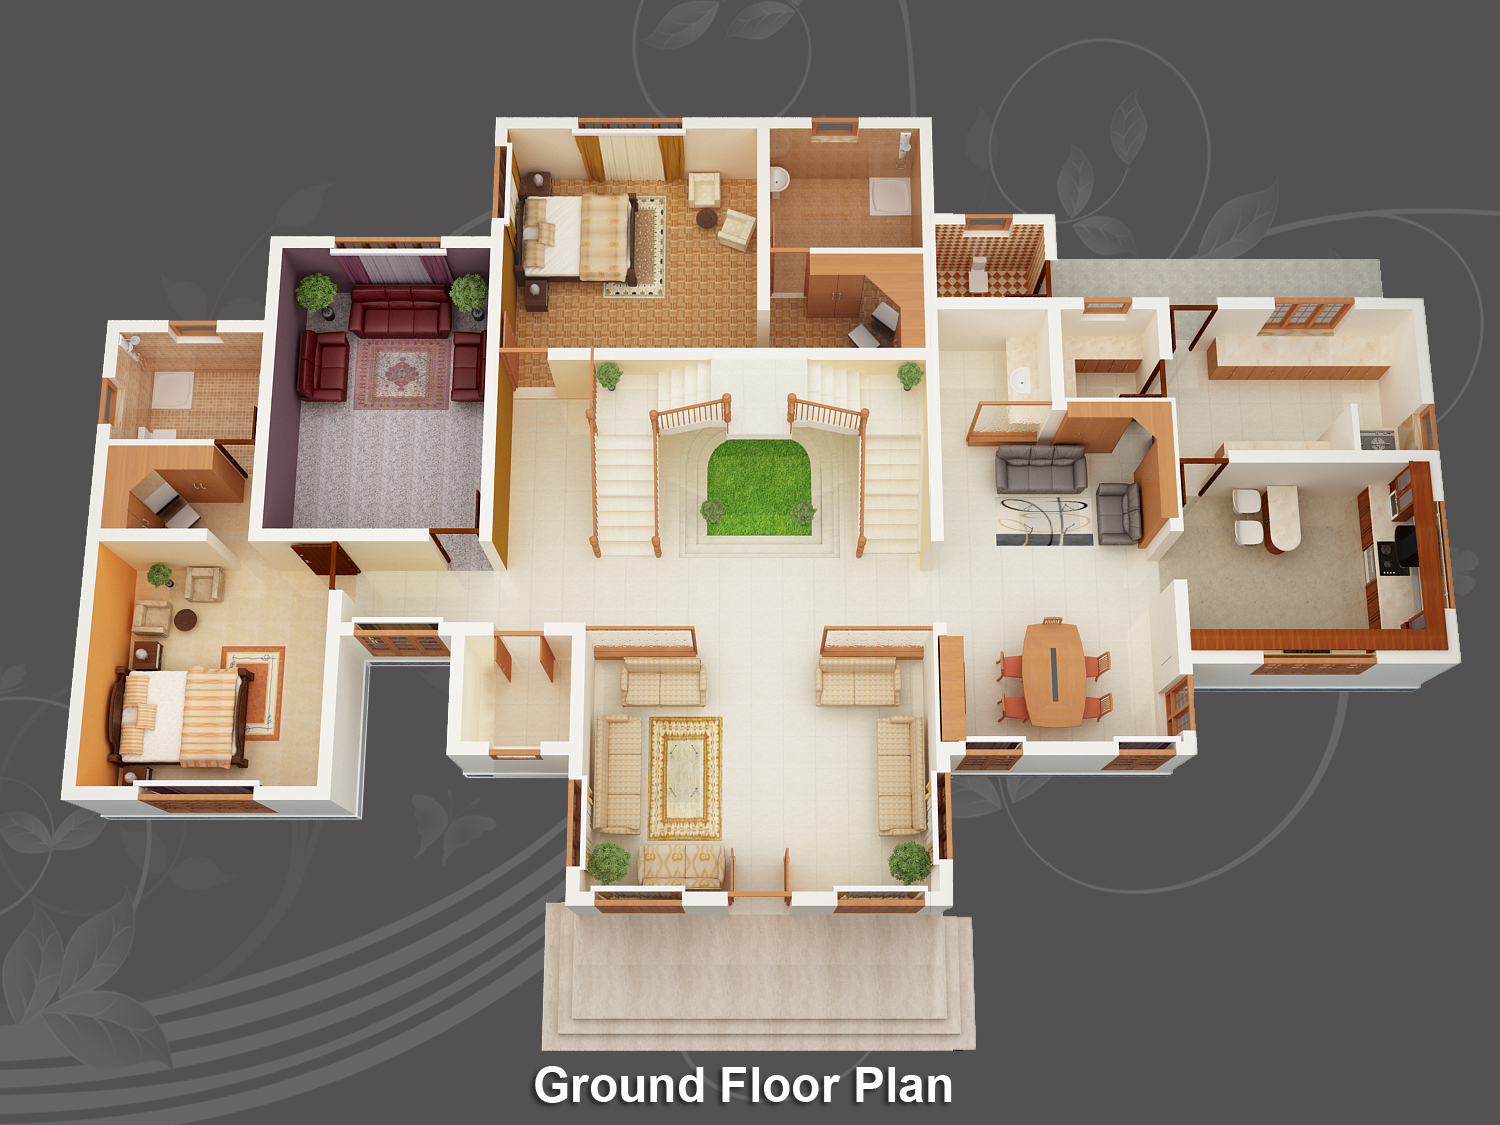 Evens construction pvt ltd 3d house plan 20 05 2011 for 3d house blueprints